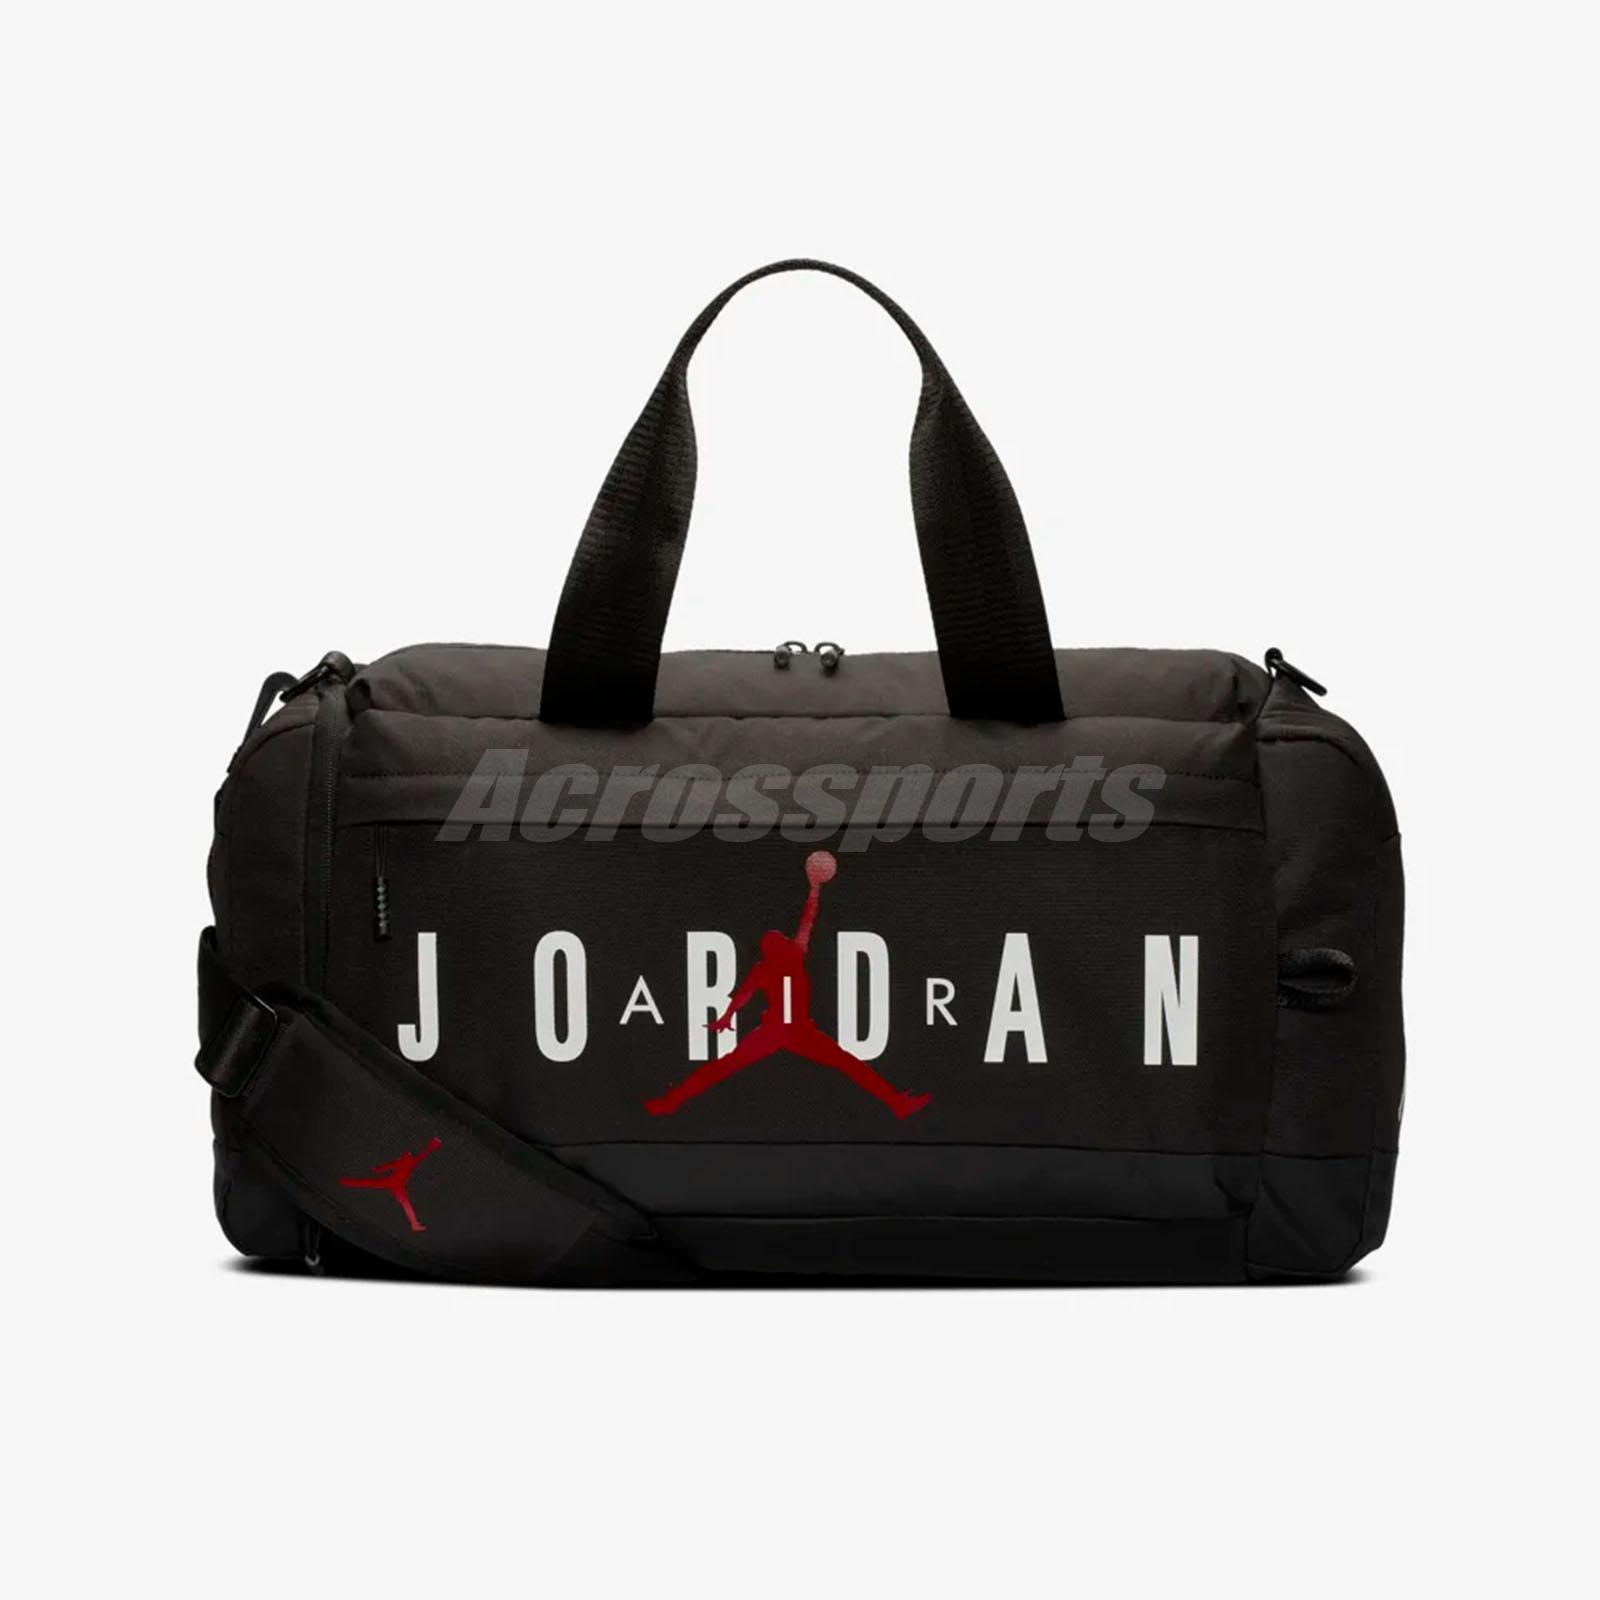 a2685dfb75dc Nike Air Jordan Duffle Duffel Bag 36L Jumpman Black White Red Training  Travel